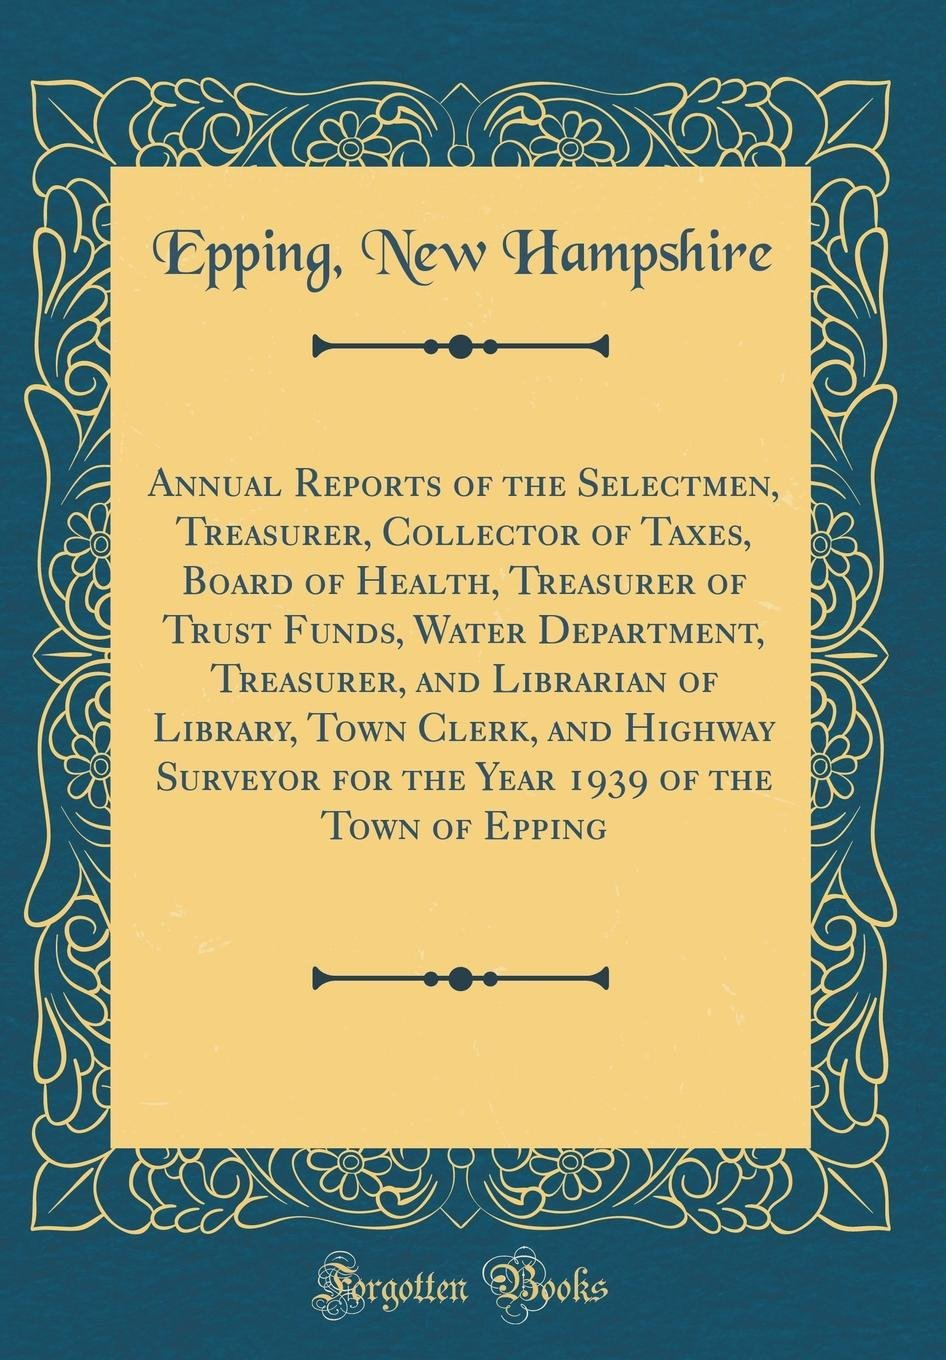 Read Online Annual Reports of the Selectmen, Treasurer, Collector of Taxes, Board of Health, Treasurer of Trust Funds, Water Department, Treasurer, and Librarian ... 1939 of the Town of Epping (Classic Reprint) ebook